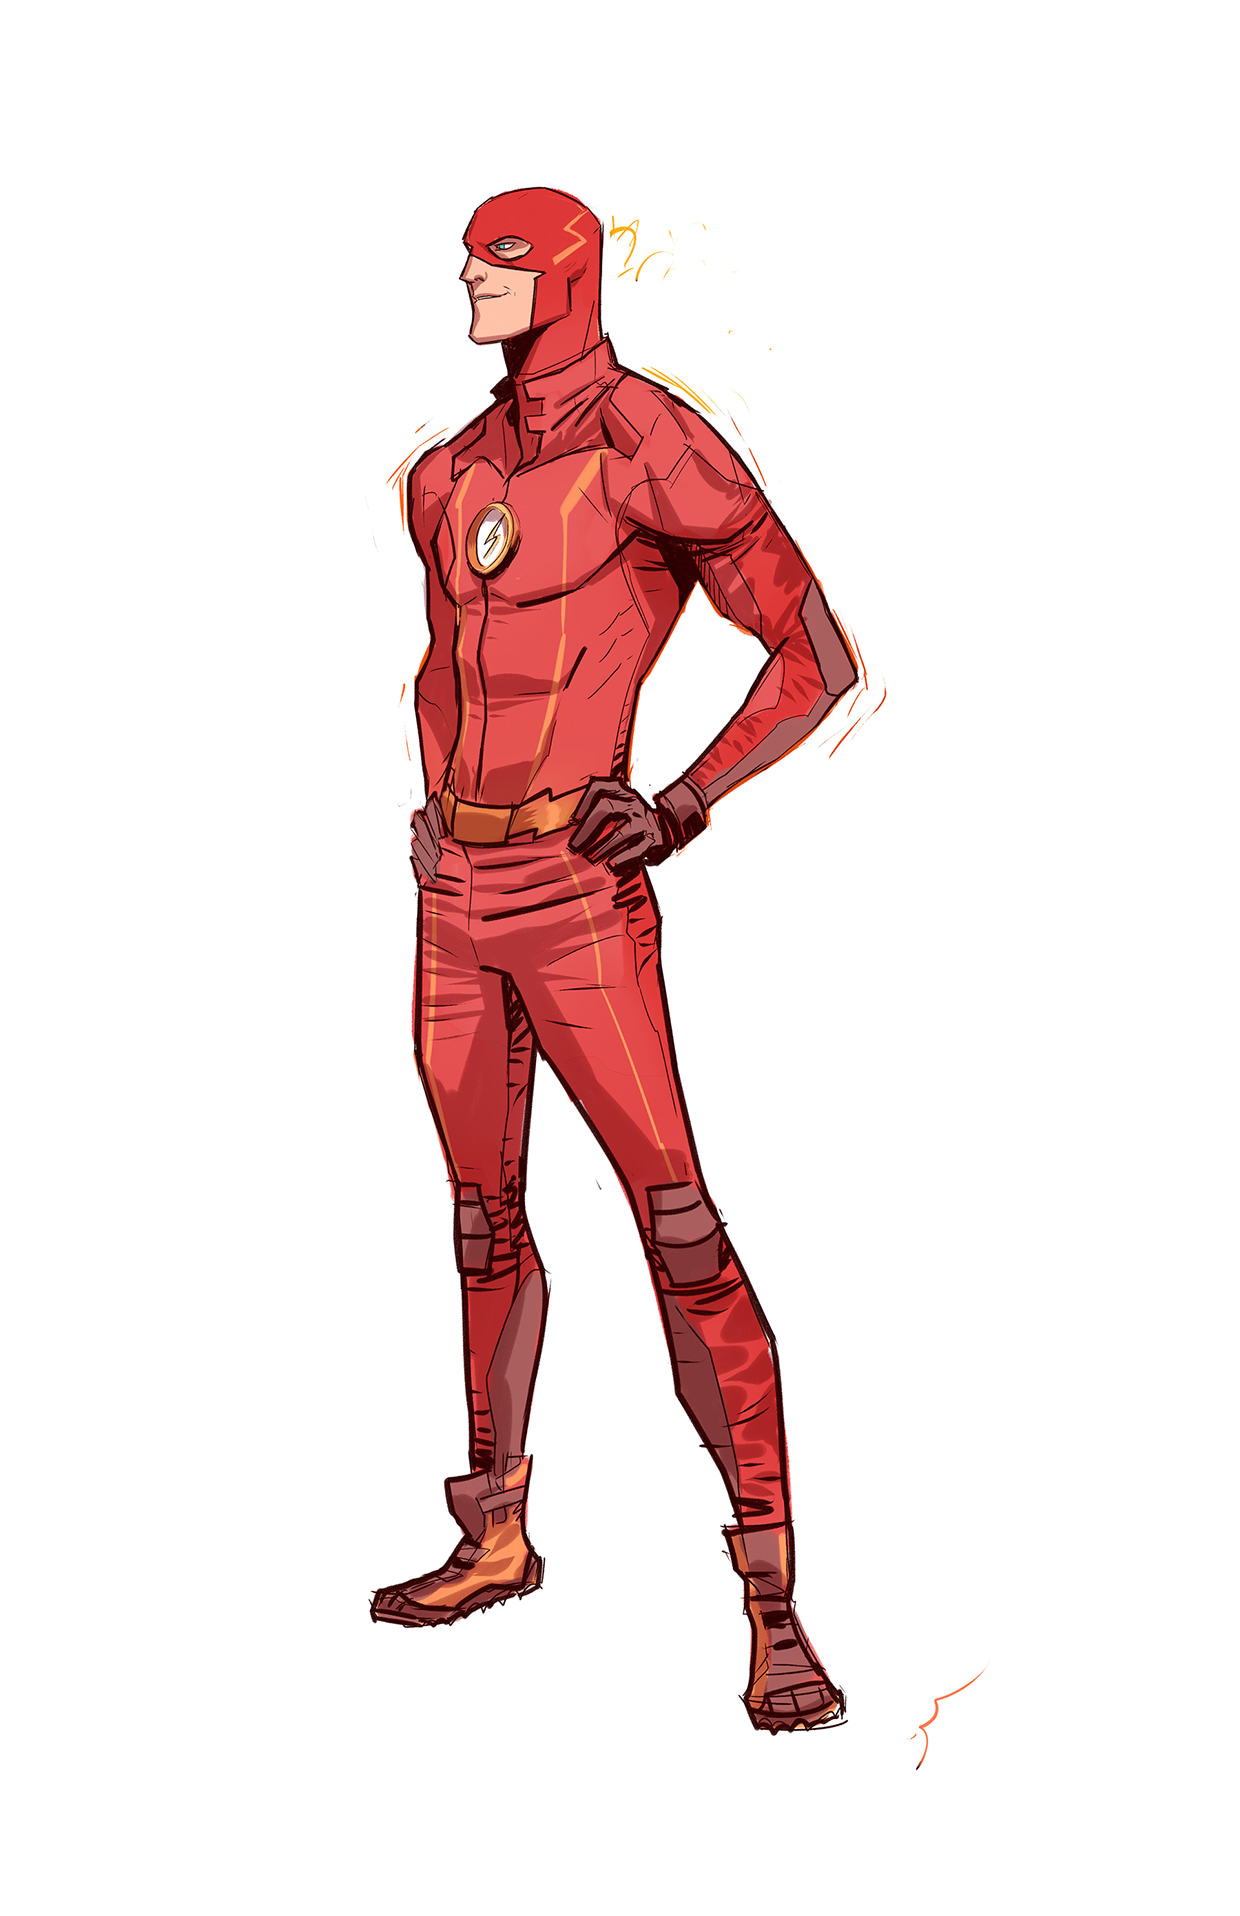 1240x1916 The Flash By Dan Mora Dc Comics Dan, Comic